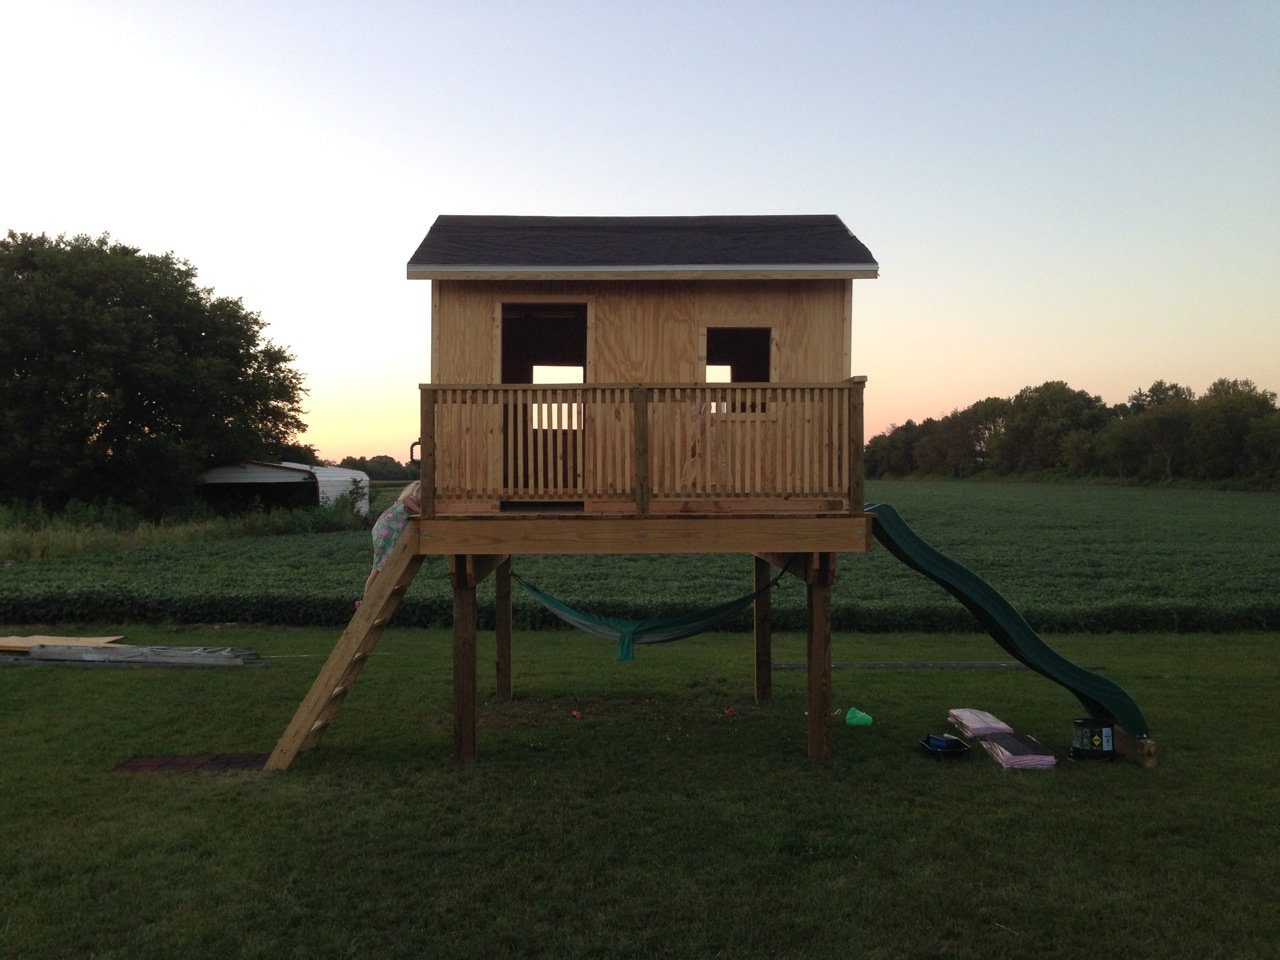 Do you want to build a treehouse living in pursuit for Treeless treehouse